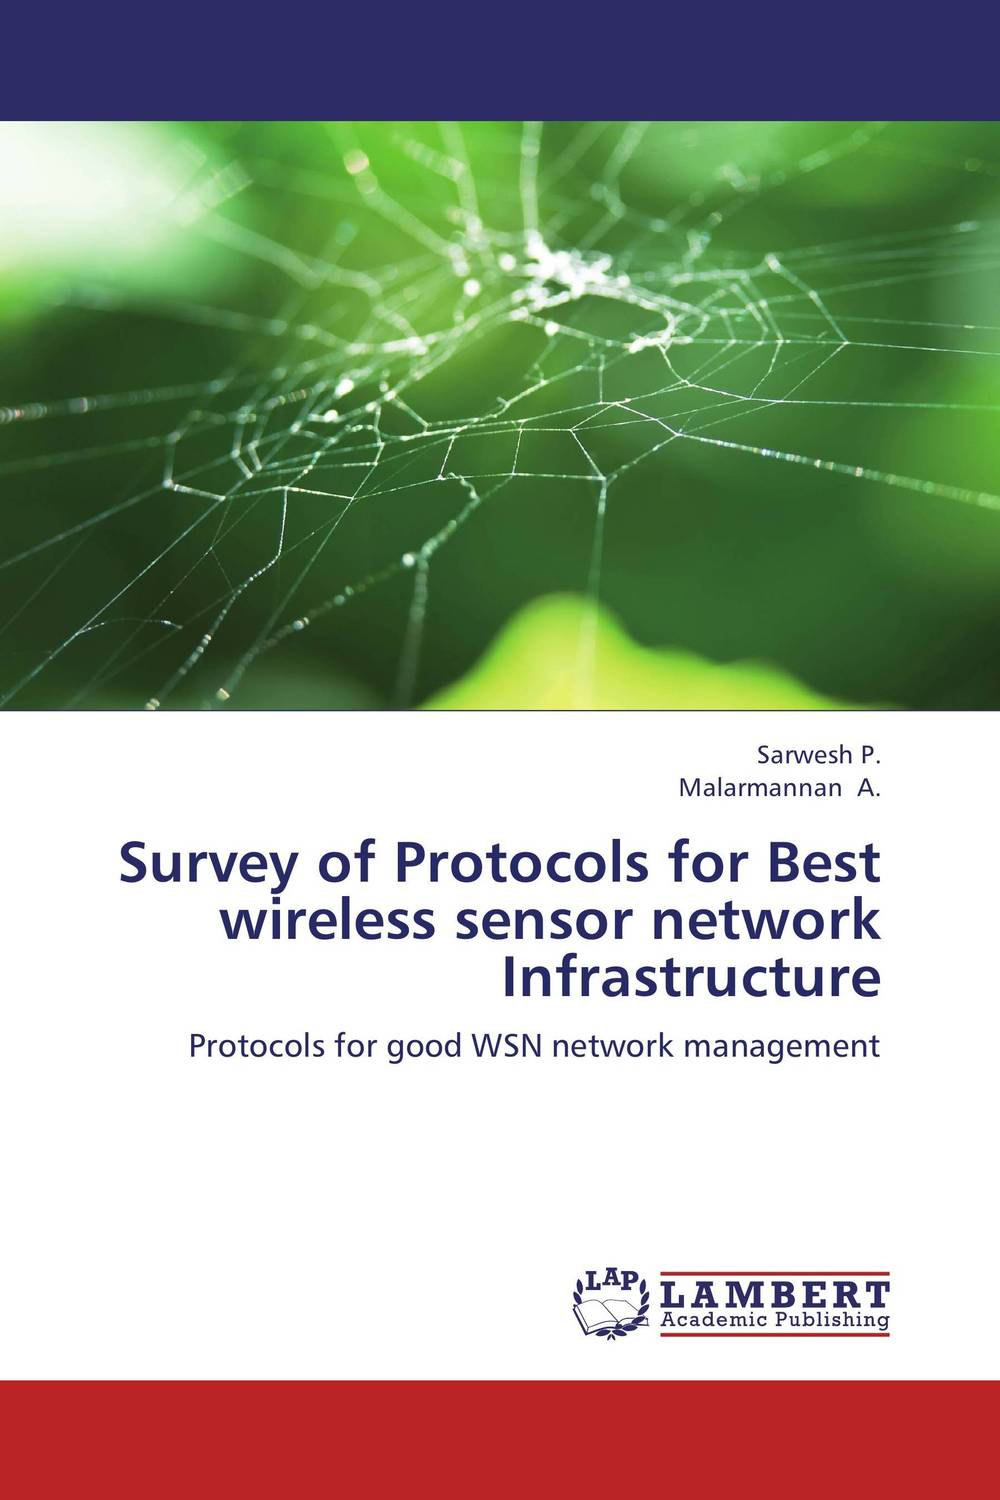 Survey of Protocols for Best wireless sensor network Infrastructure